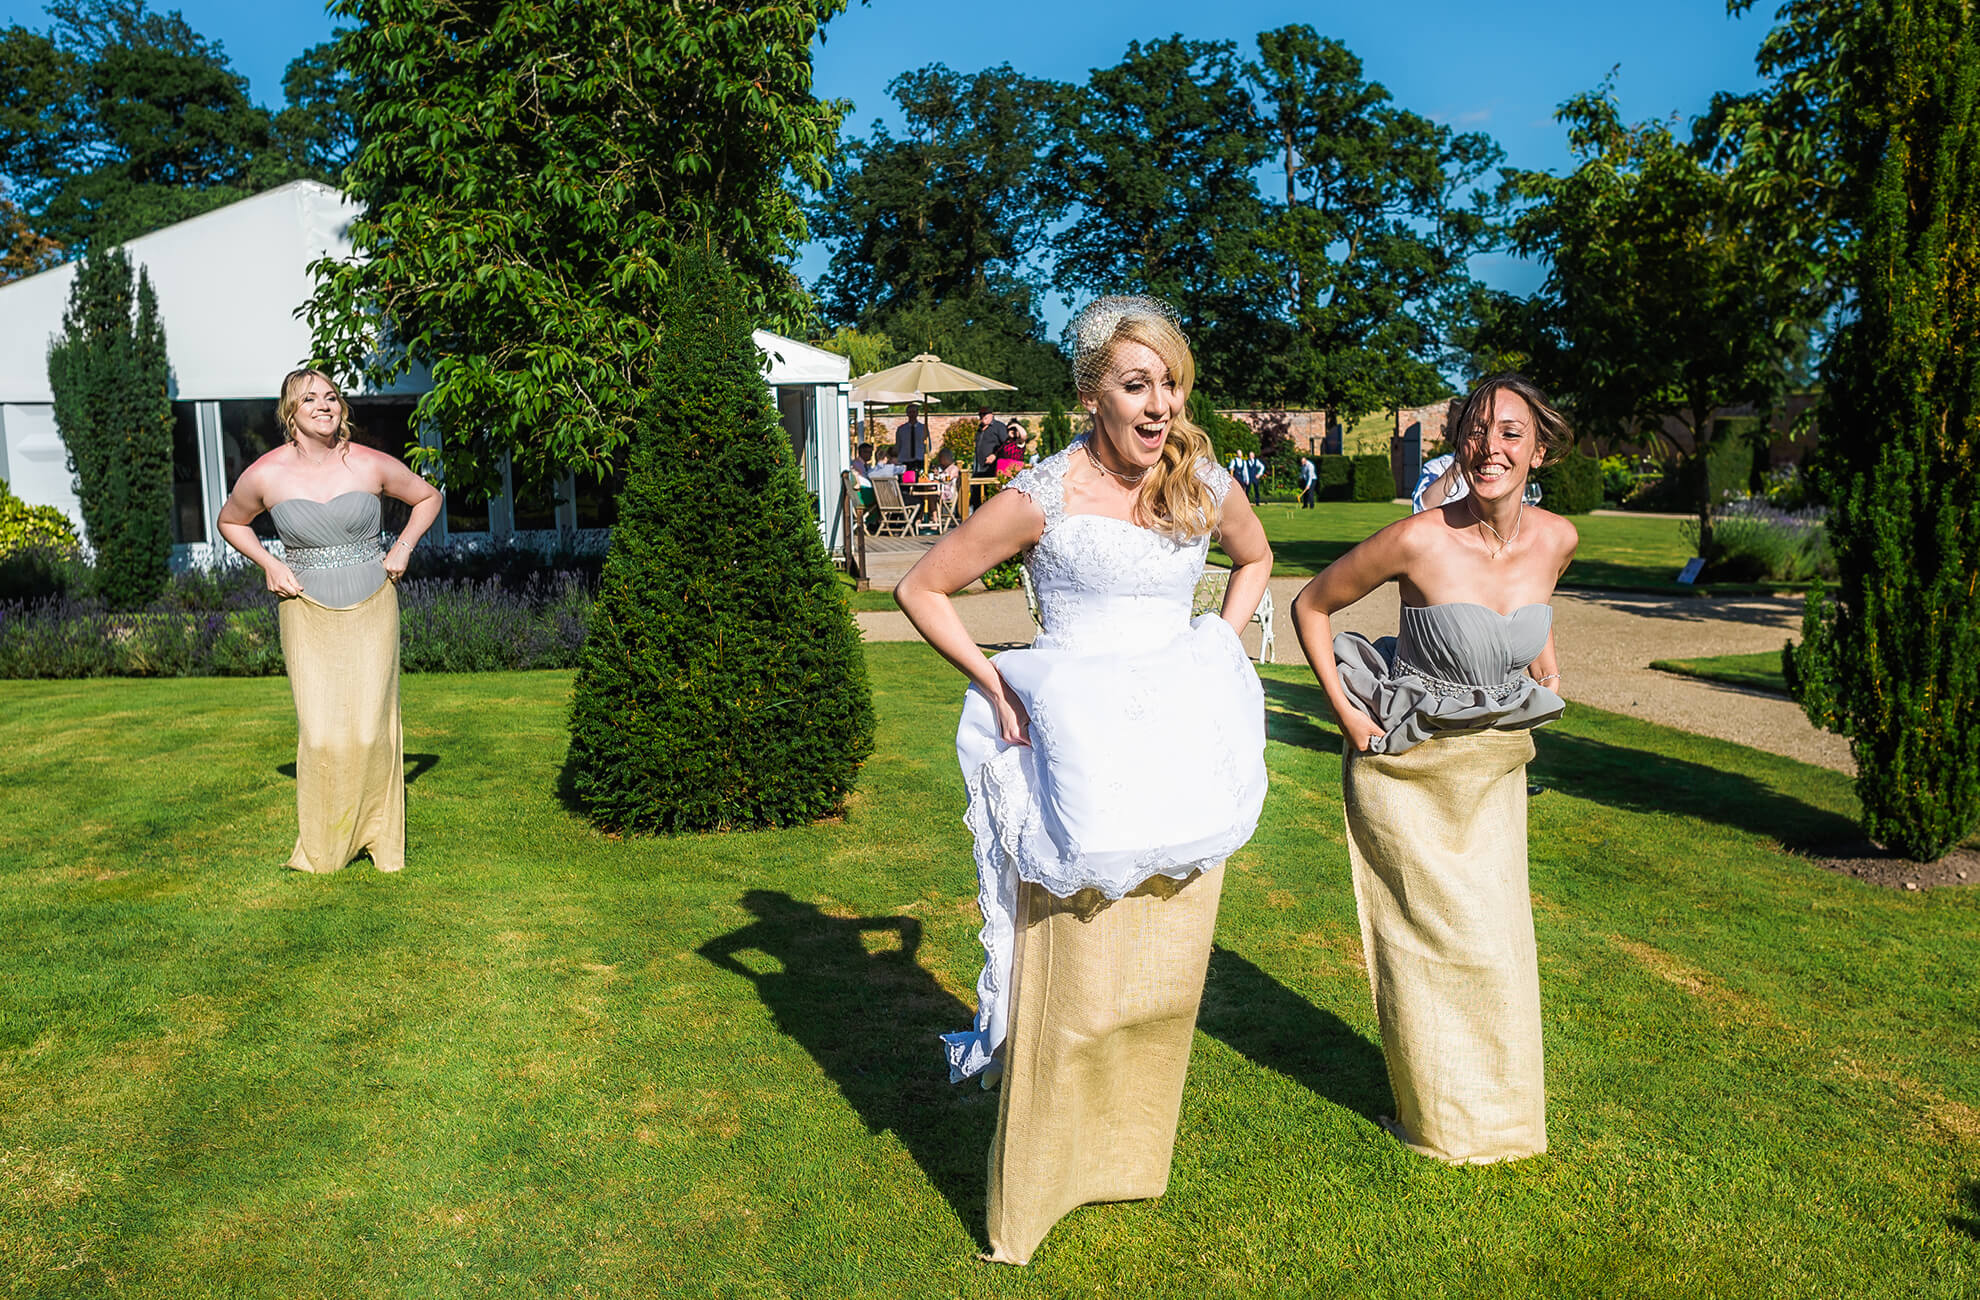 At the Cheshire wedding venue the bride and her bridesmaids take part in a competitive sac race during the wedding reception